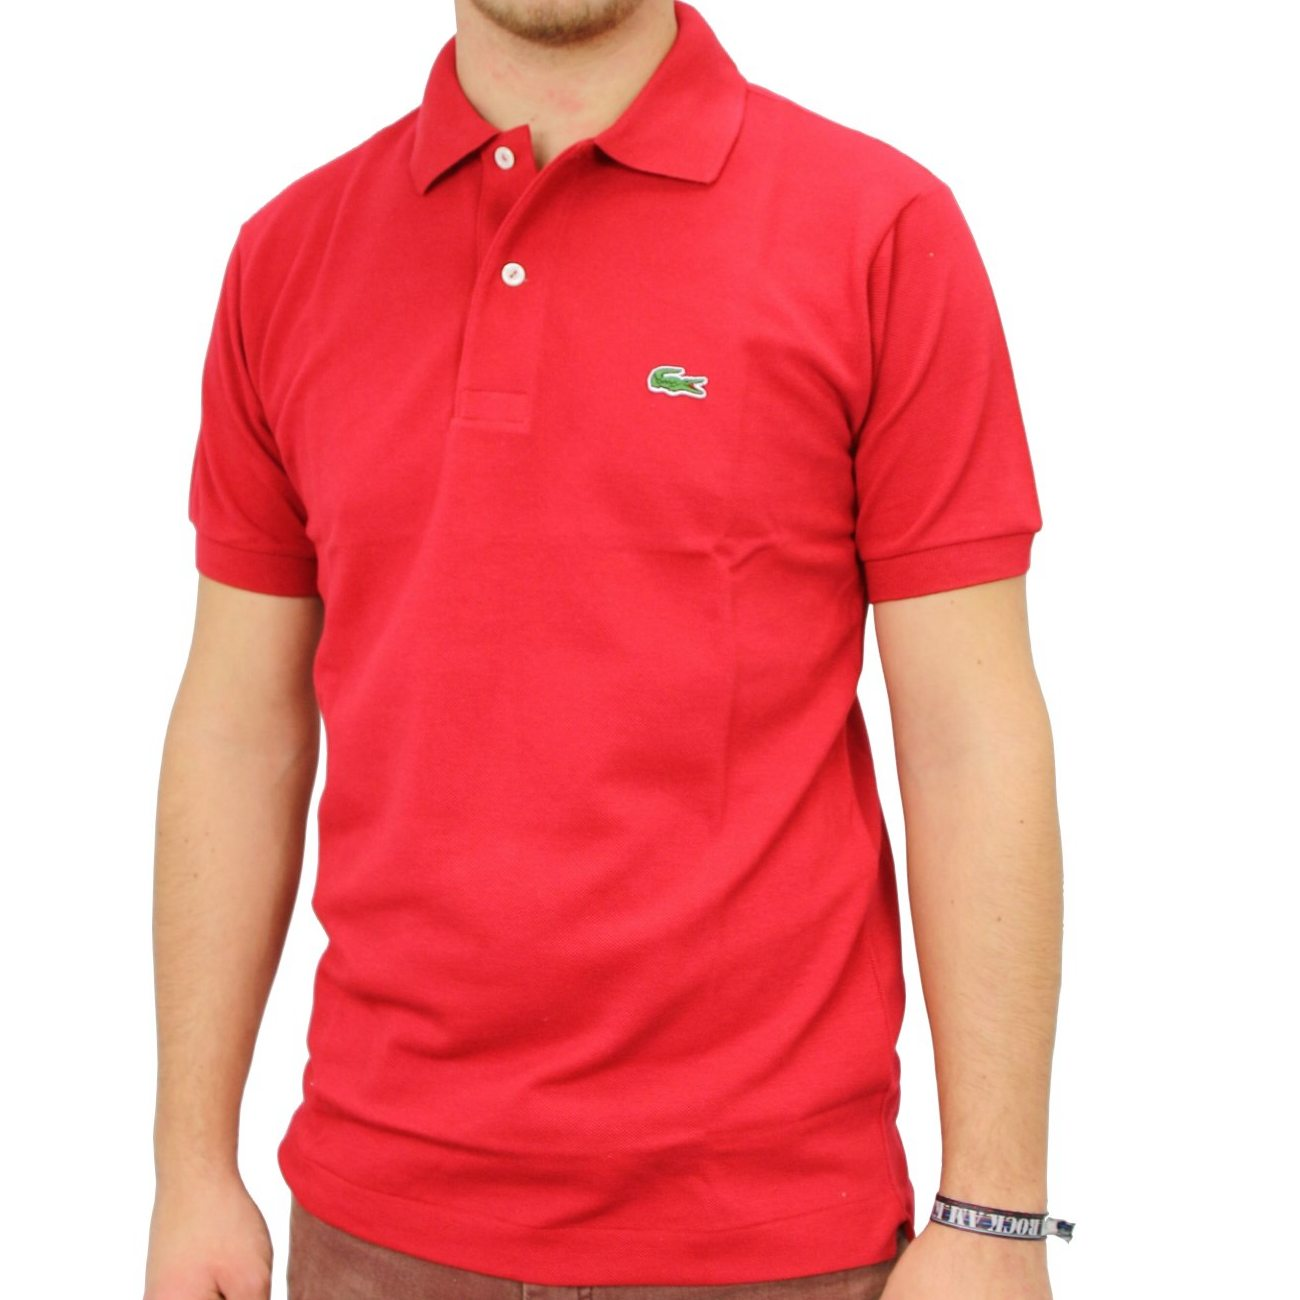 Mens Lacoste Polo T Shirts